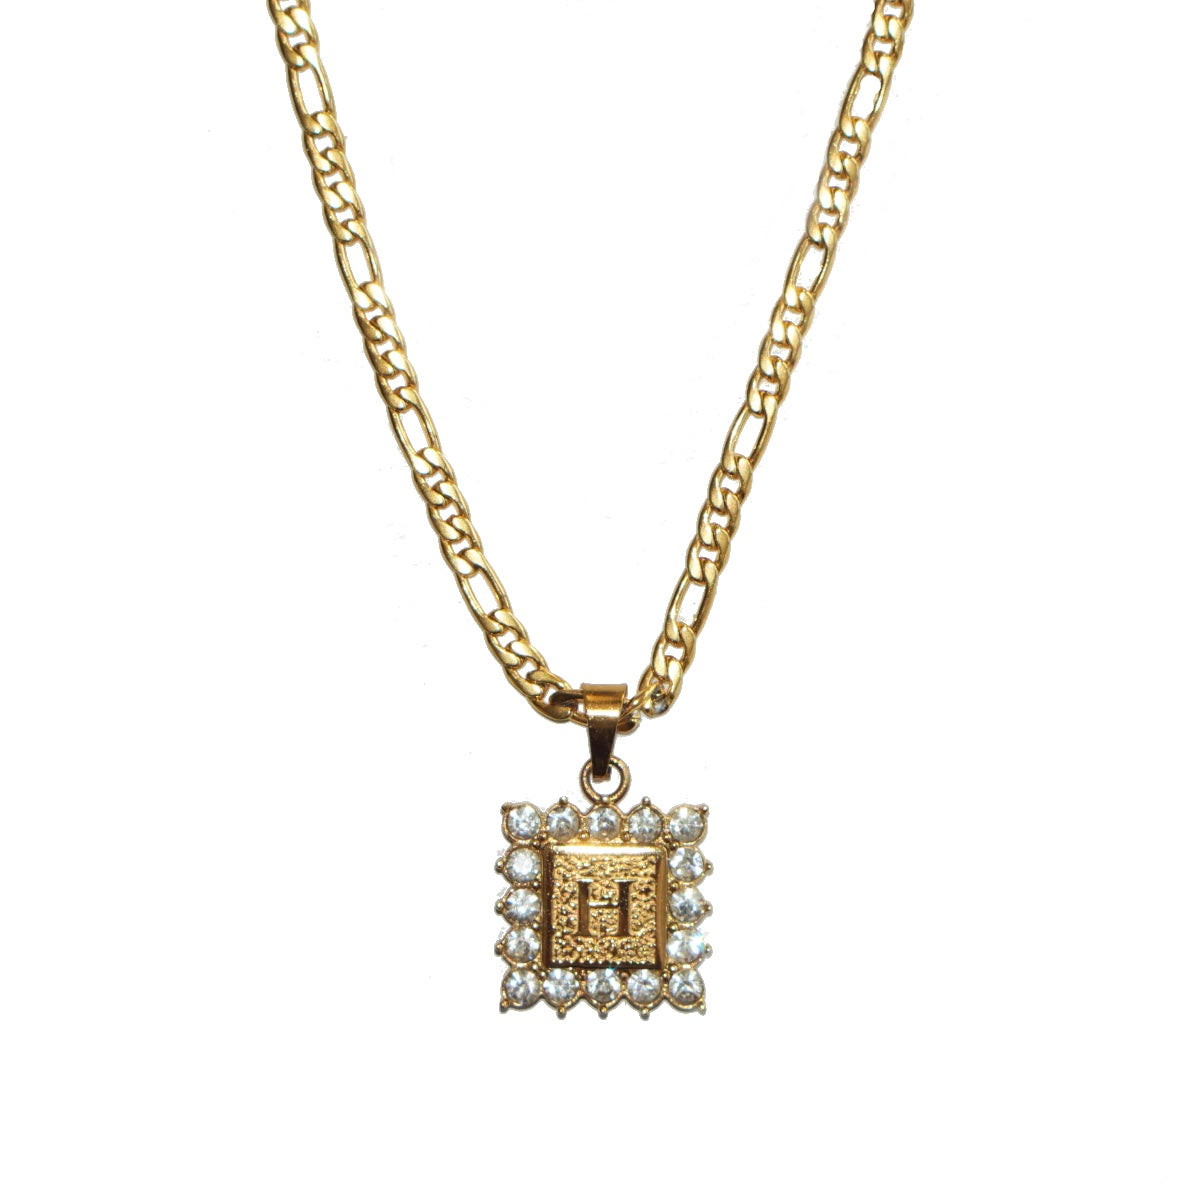 Square cz initial necklace